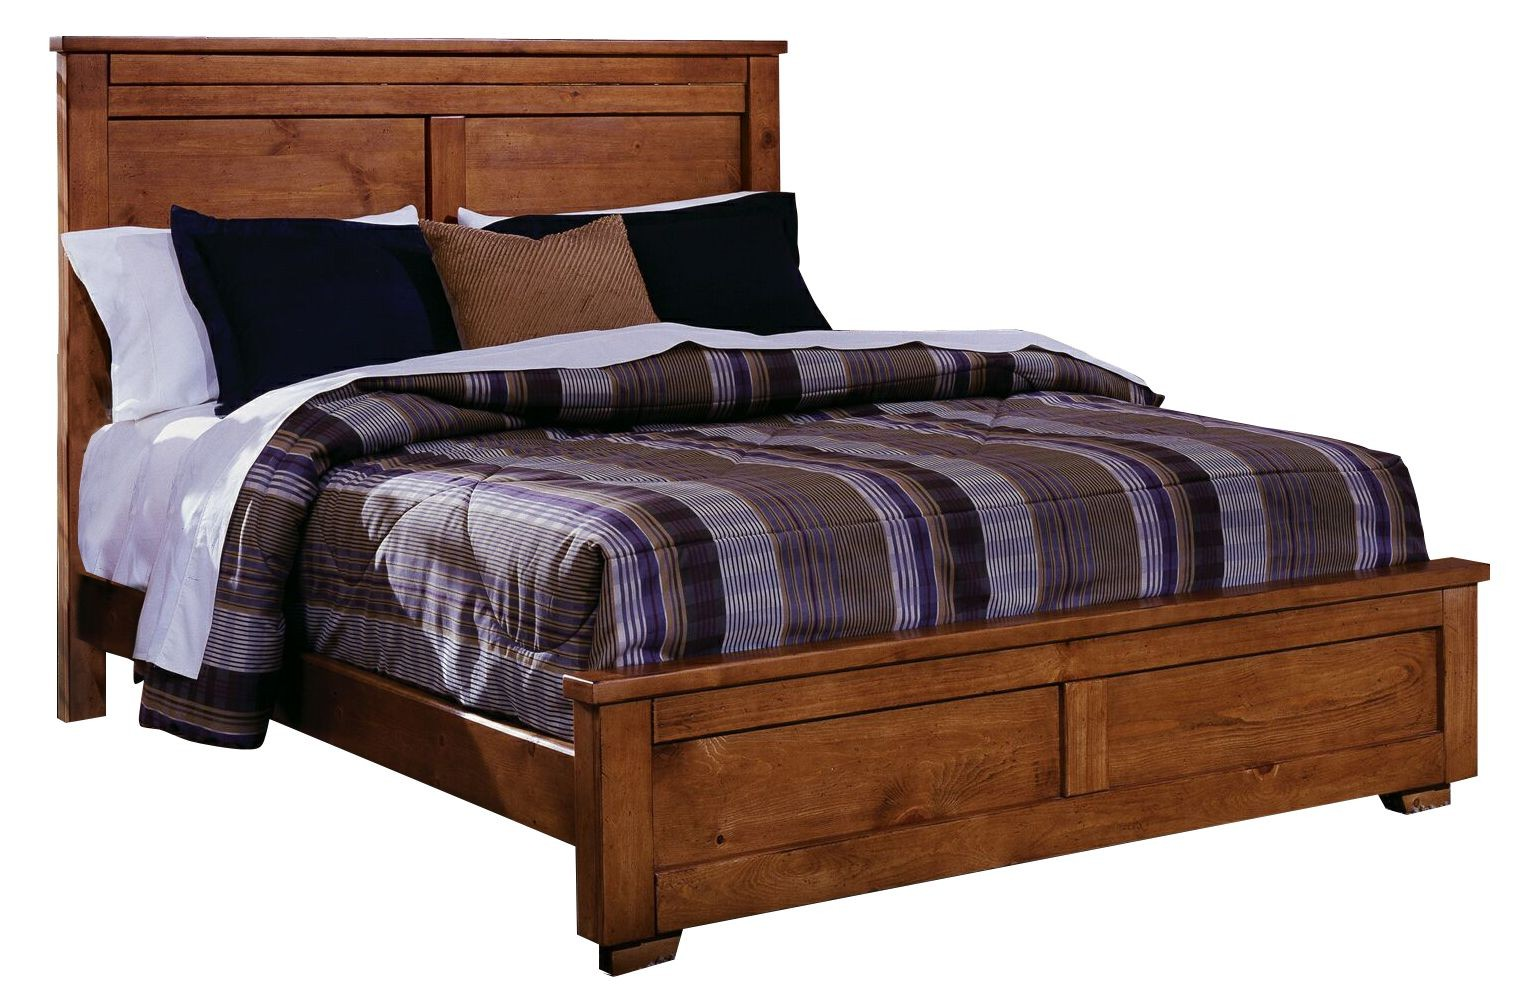 Go Cinnamon Pine King Panel Bed From Progressive